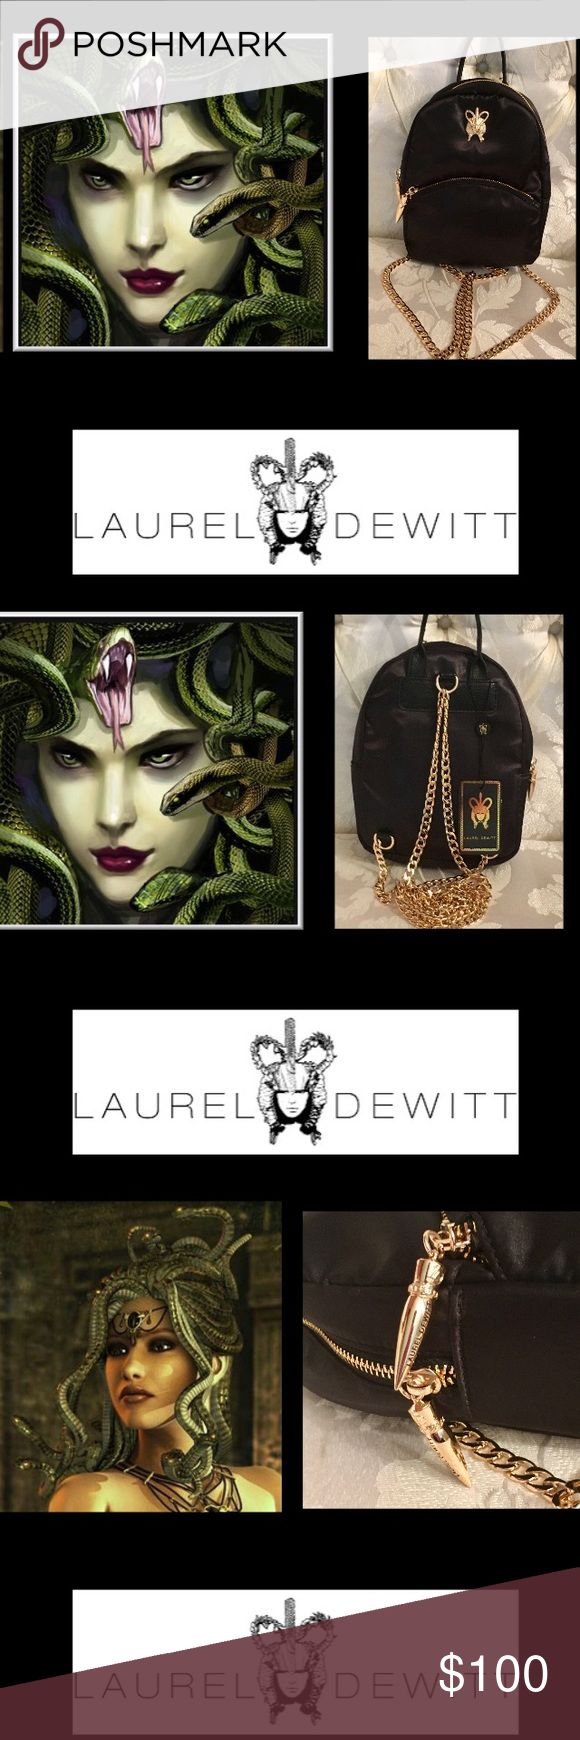 """🦋Laurel Dewitt•Goddess Backpack This Egyptian Goddess Backpack elegant chain backpack straps. Perfect for day or night on the town•an Egyptian Goddess emblem,one carrying handle,gold chain link shoulder straps, and zip closure. Interior: one zip pocket and one open pocket•Logo Lining  •LD Dagger Pullers with Logo  7"""" x 3.5"""" x 8.5"""" Exterior: one zip pocket🌹SOLD OUT🌹 Laurel Dewitt Bags Backpacks"""